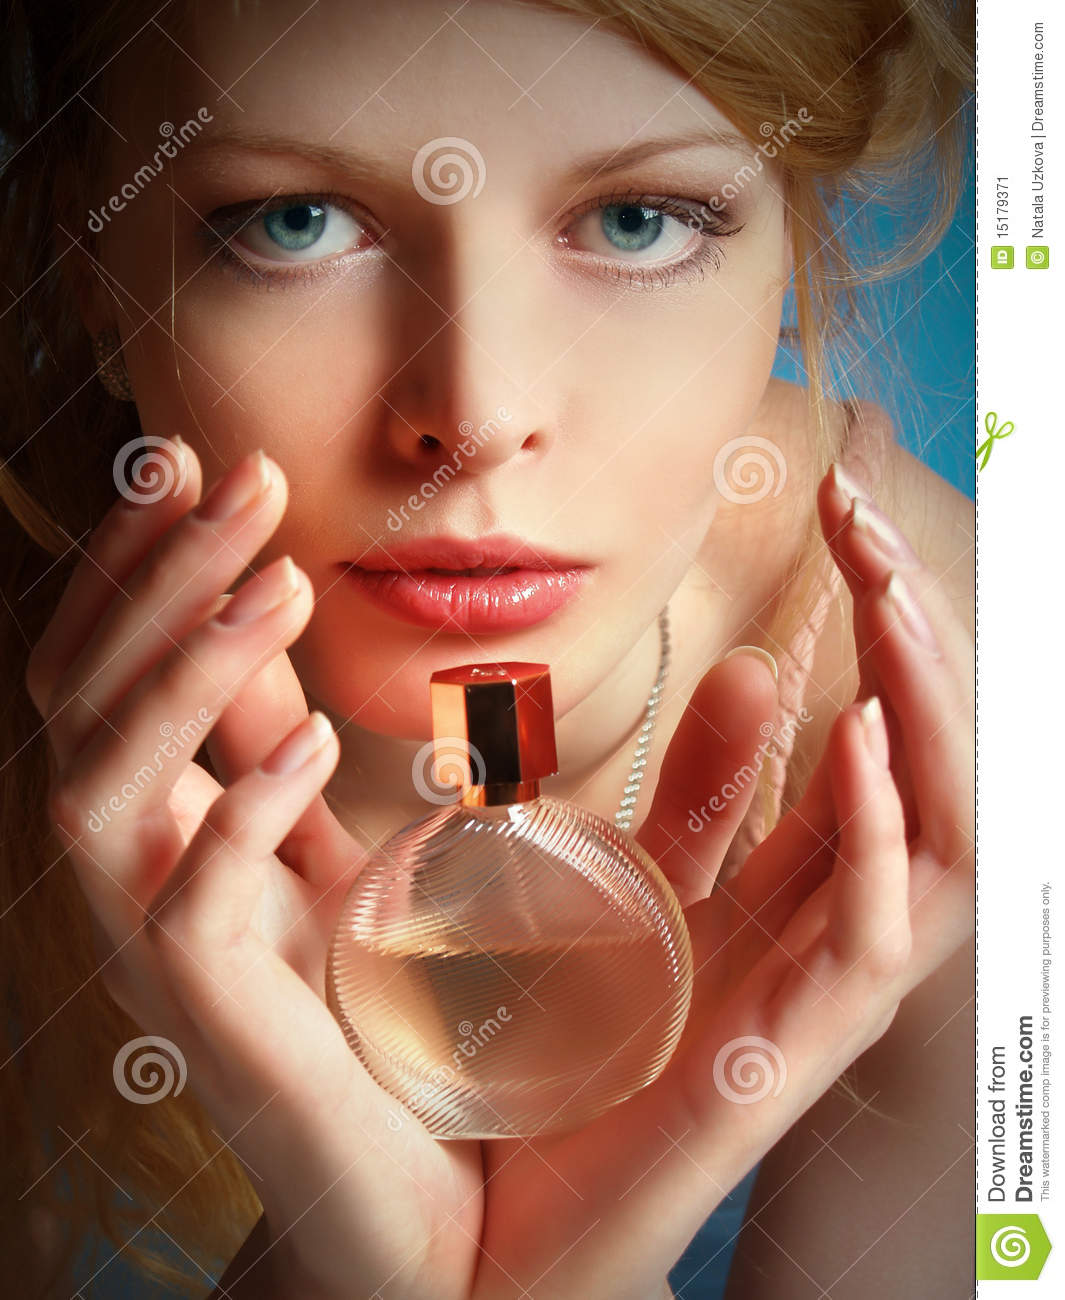 Girl with a bottle of perfume in her hands